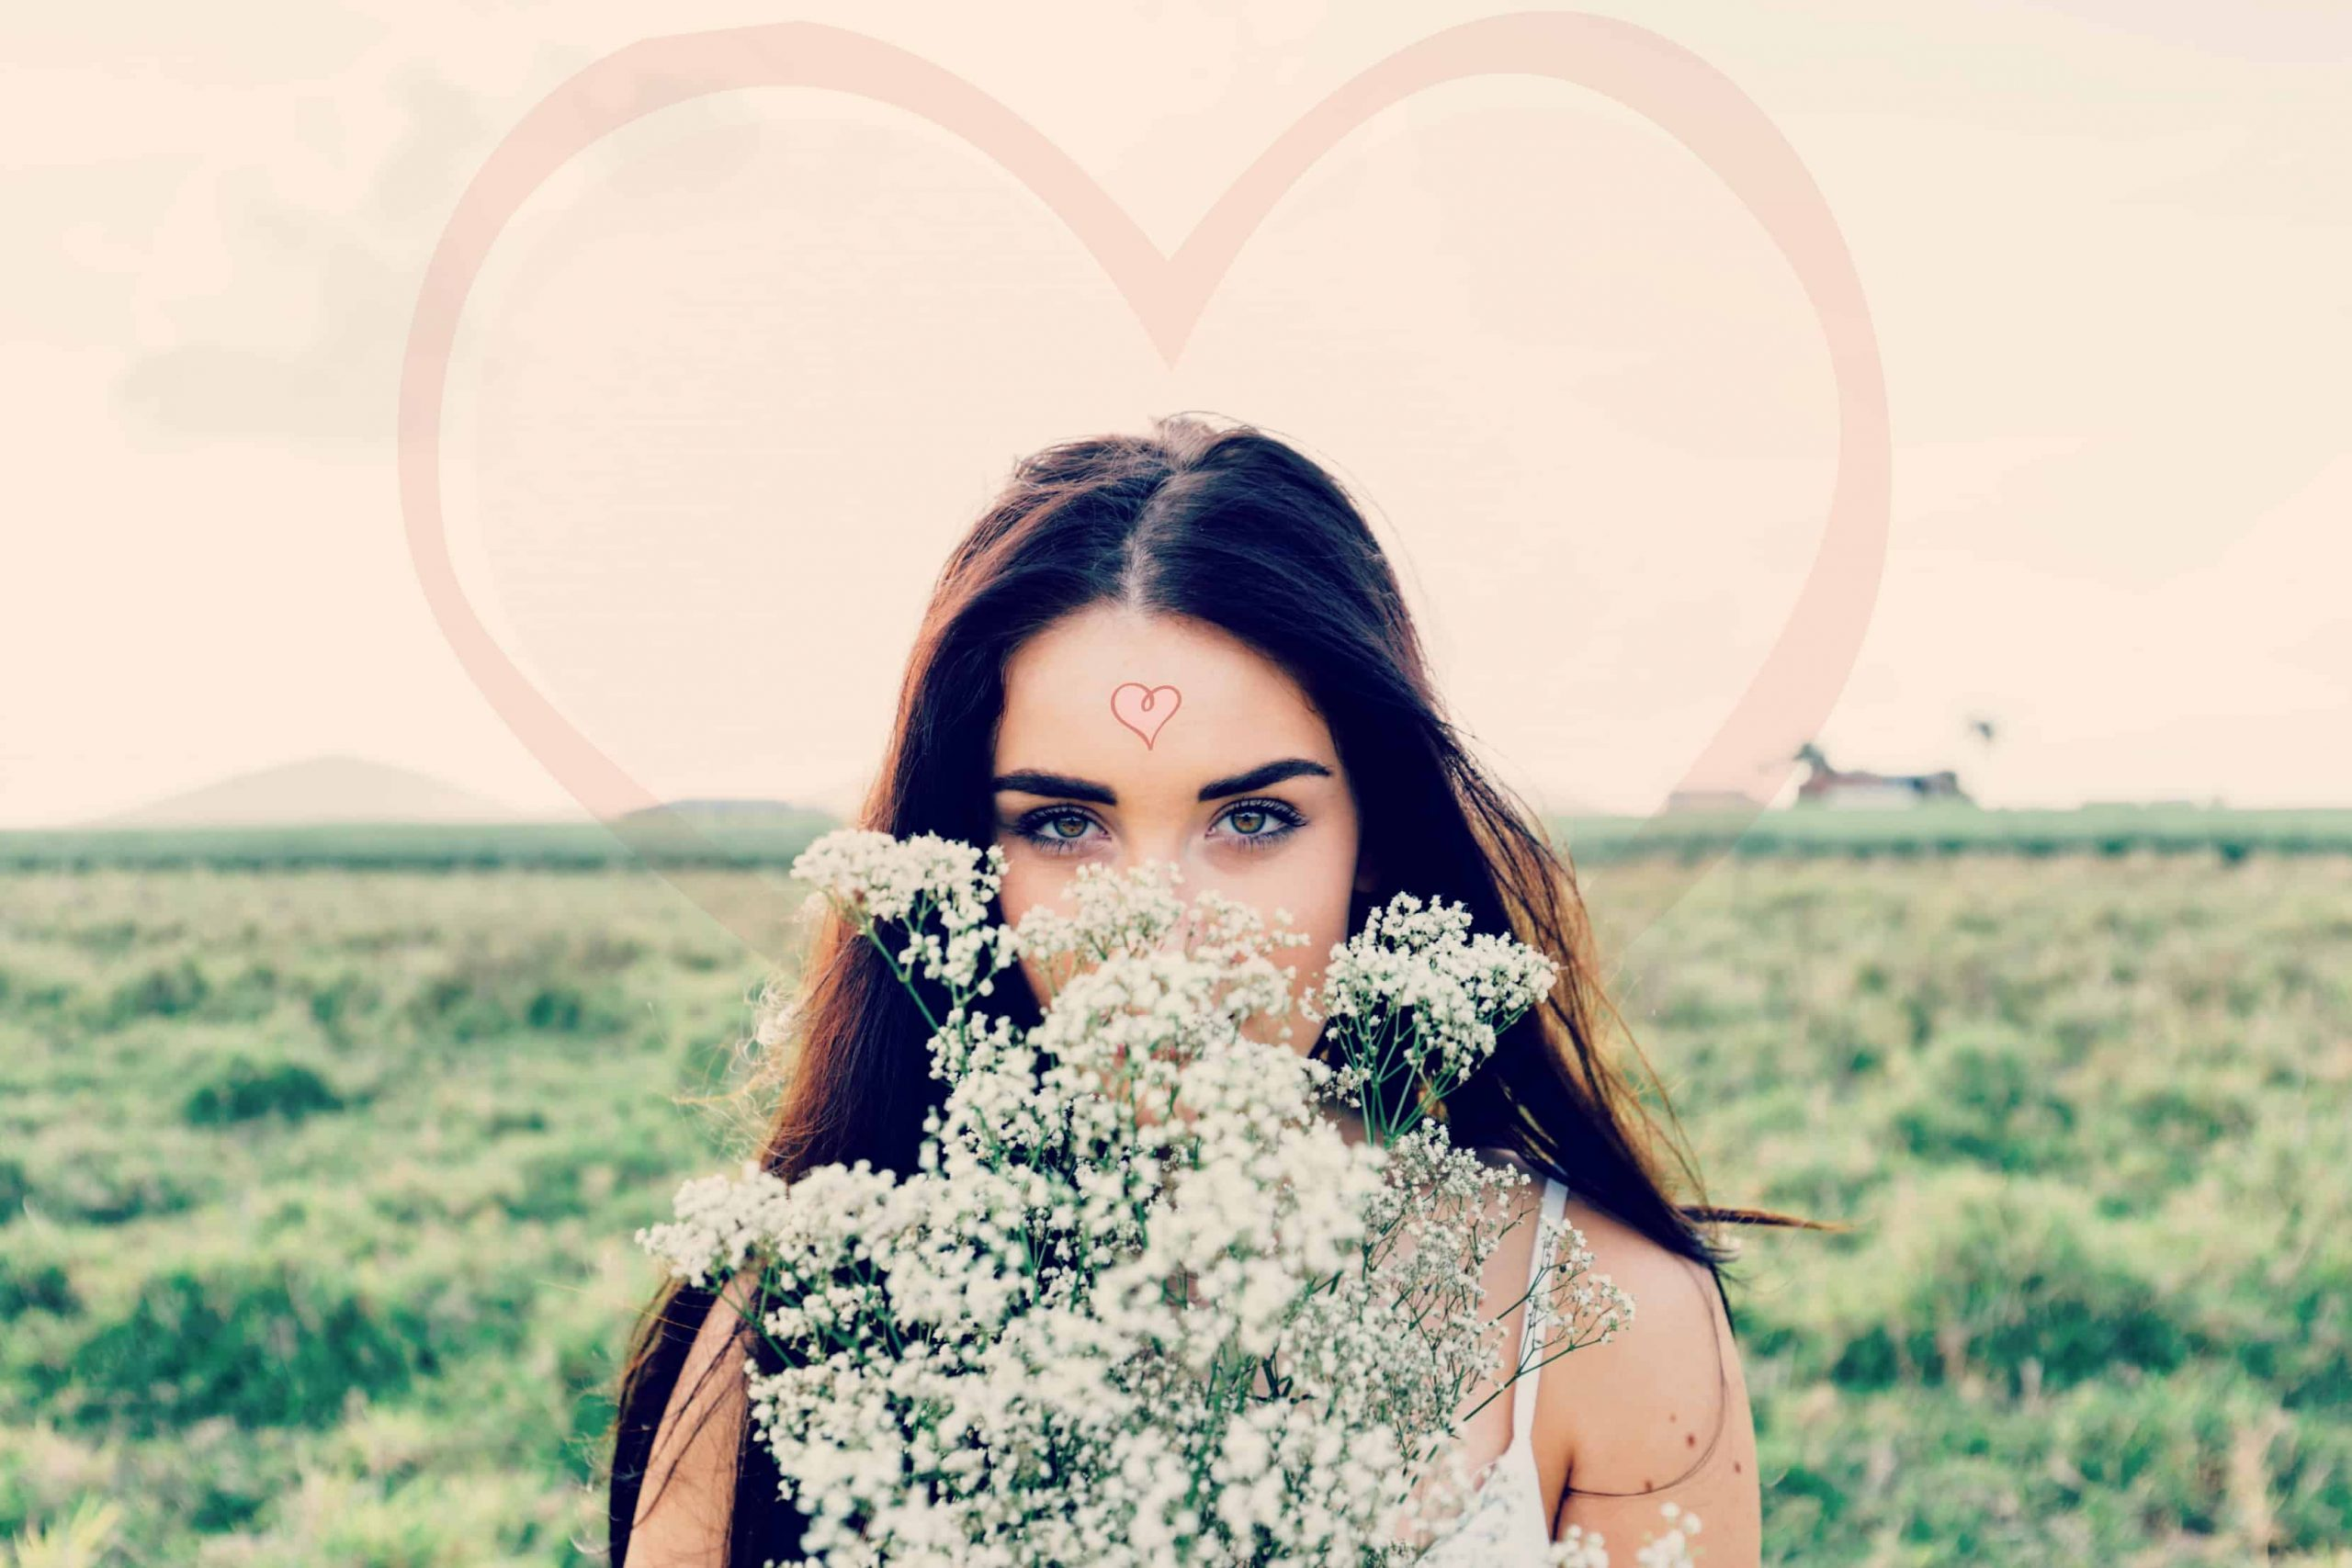 Love letter to a highly sensitive empath